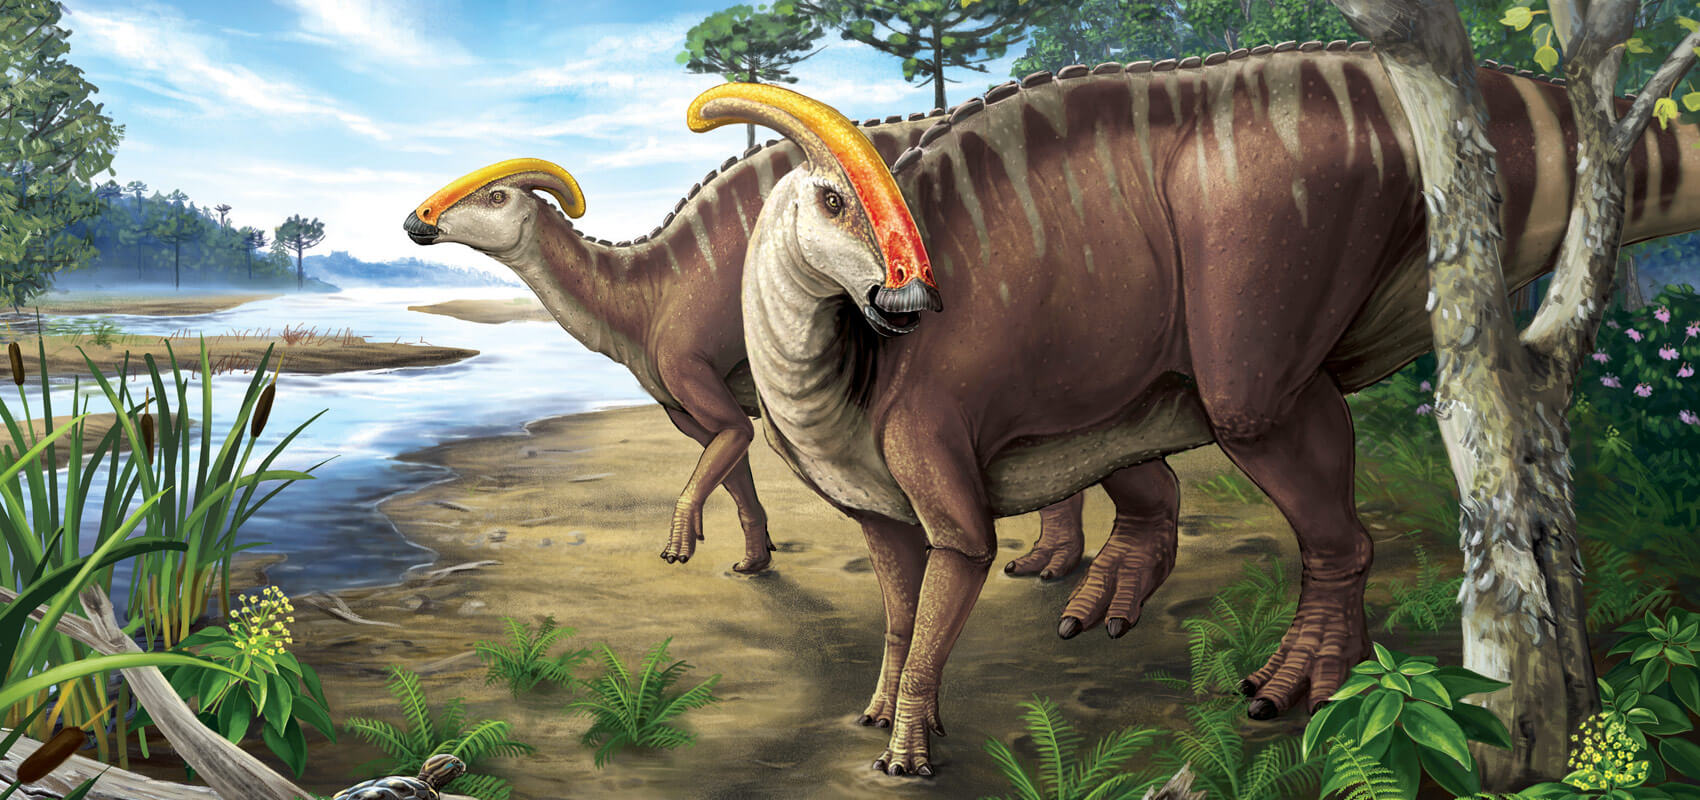 300 teeth: Duck-billed dinosaurs would have been dentist's dream